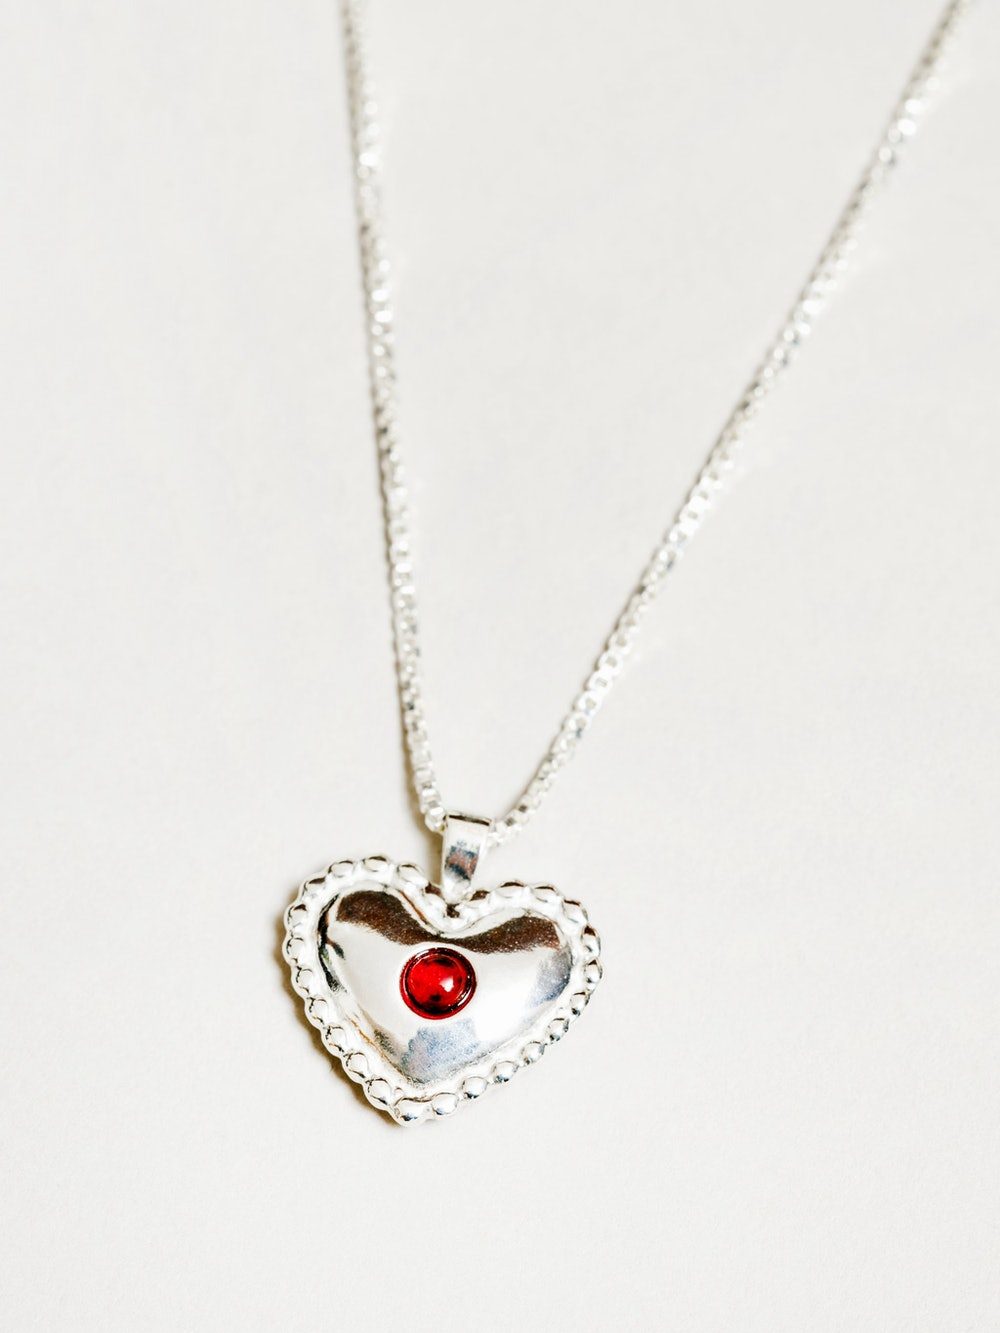 Katalina Necklace in Sterling Silver, $160 CAD